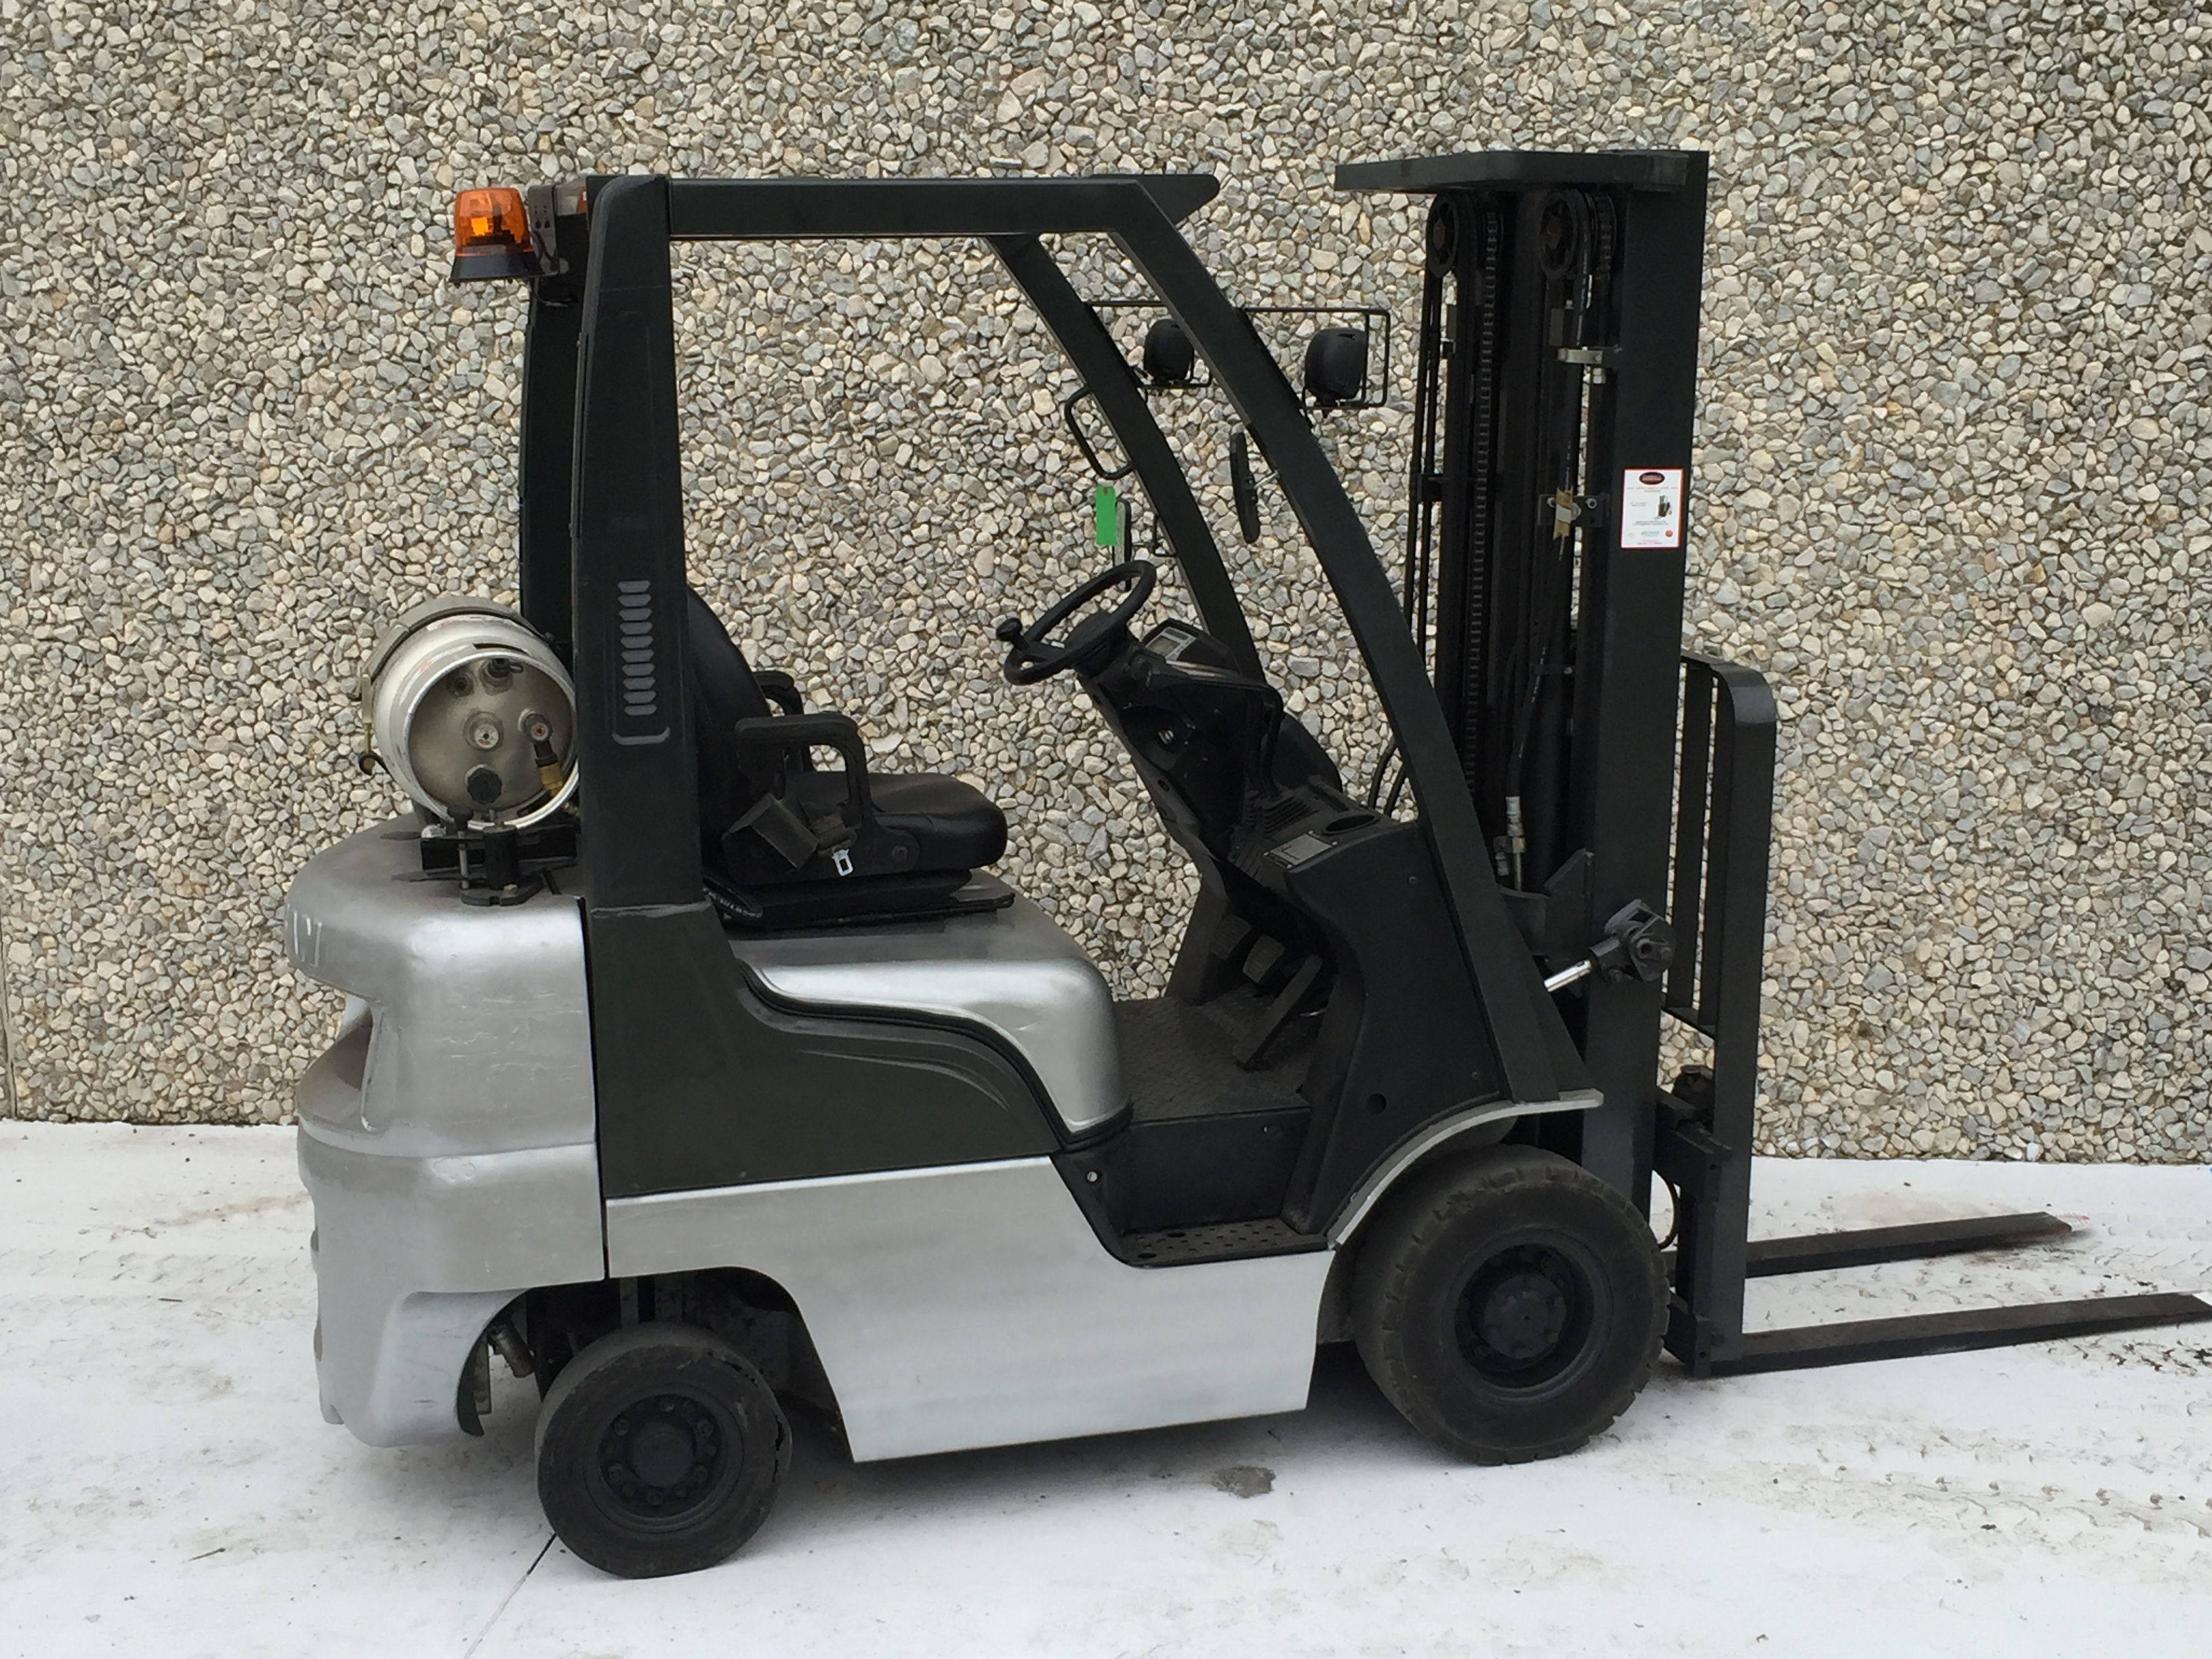 used forklifts, used forklifts for sale, used forklift, used forklift for sale, used lift trucks